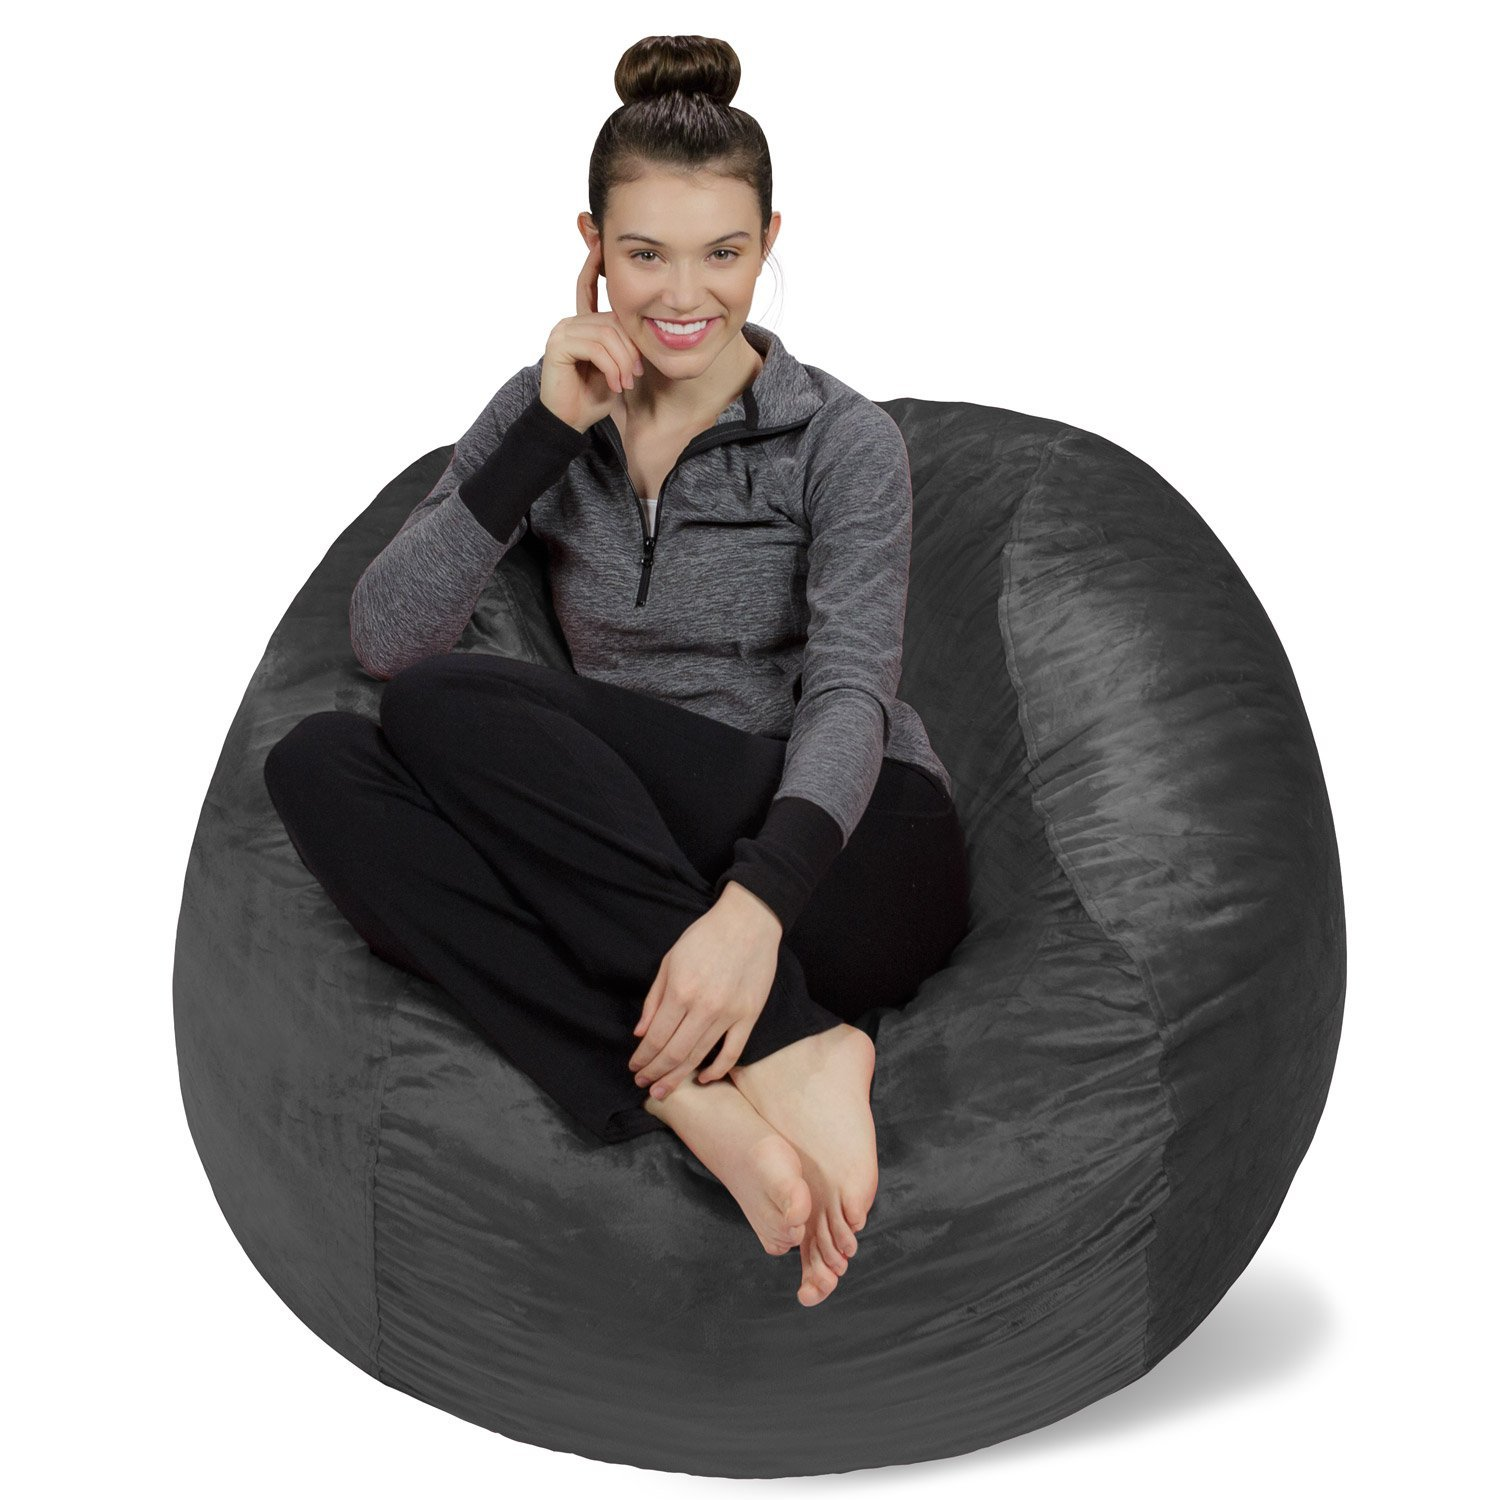 Sofa Sack - Plush, Ultra Soft Bean Bag Chair - Memory Foam Bean Bag Chair with Microsuede Cover - Stuffed Foam Filled Furniture and Accessories for Dorm Room - Charcoal 4' by Sofa Sack - Bean Bags